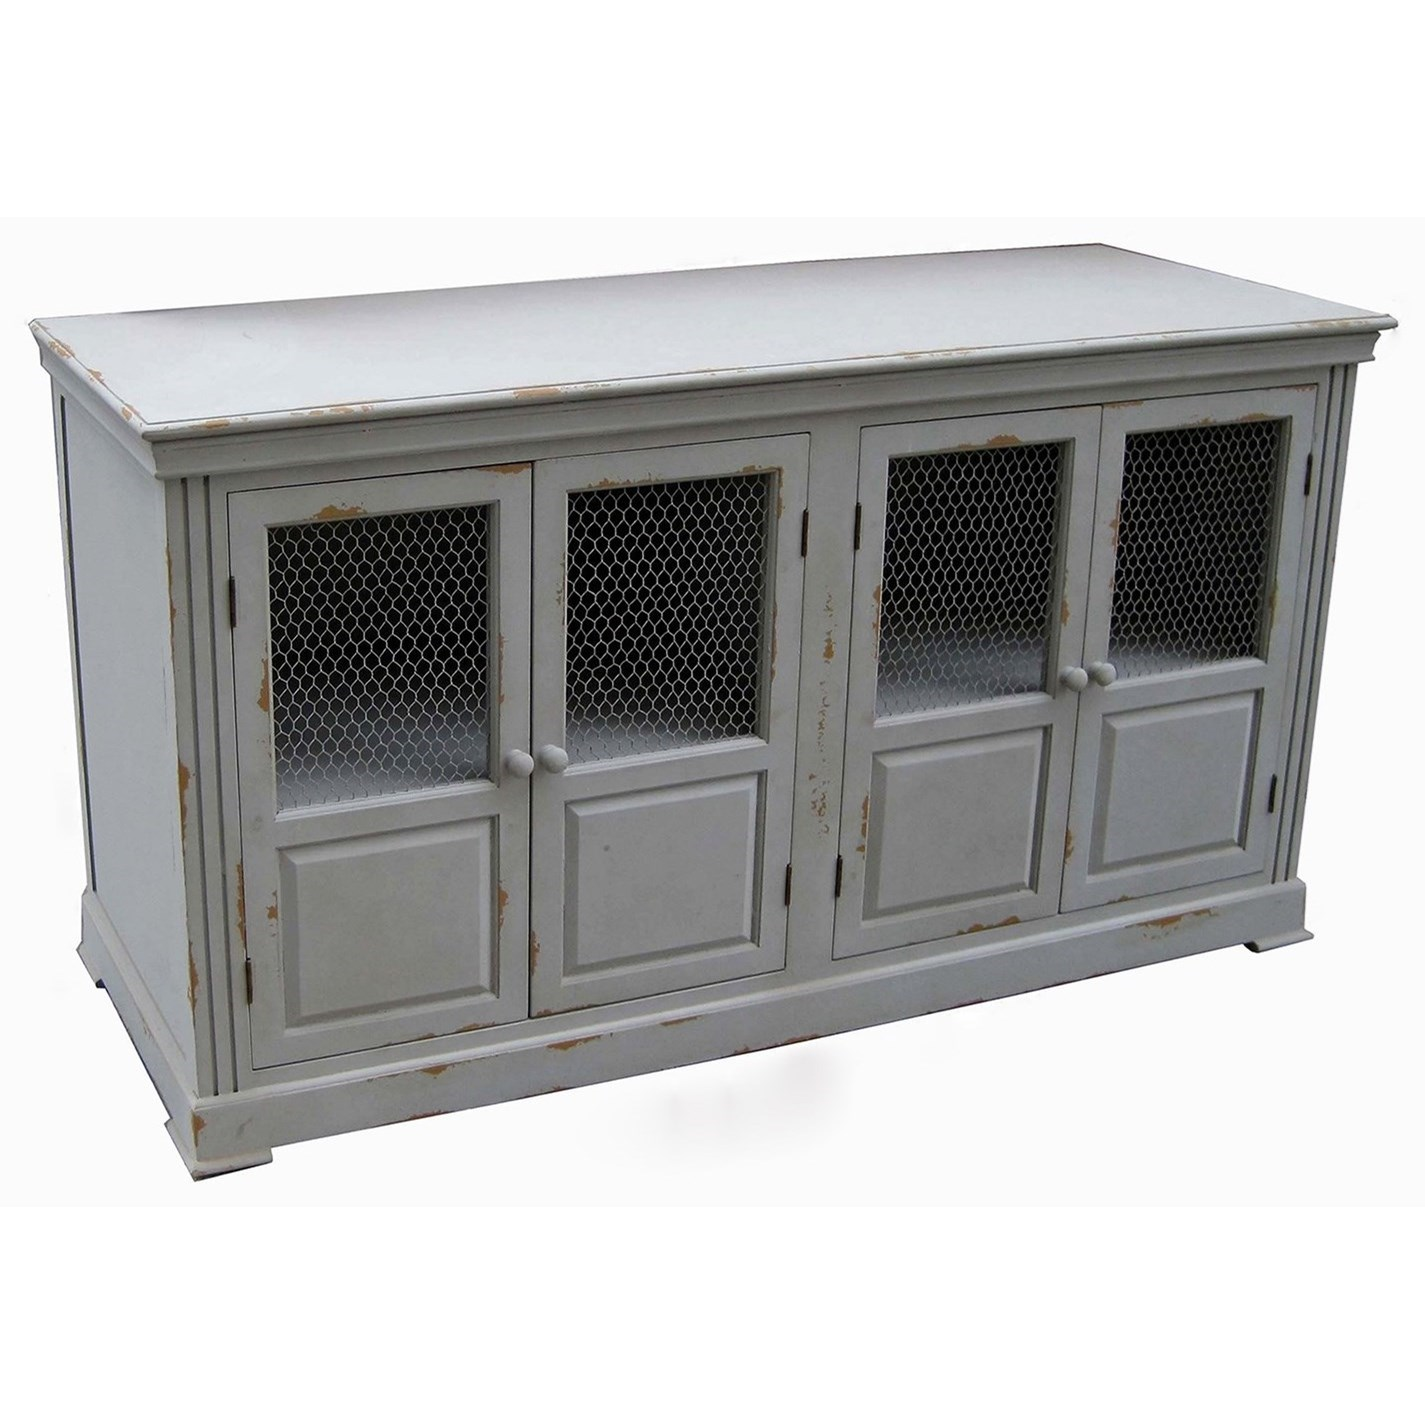 Accent Furniture Lydia Pale Grey and Chicken Wire Sideboard by Crestview Collection at Factory Direct Furniture